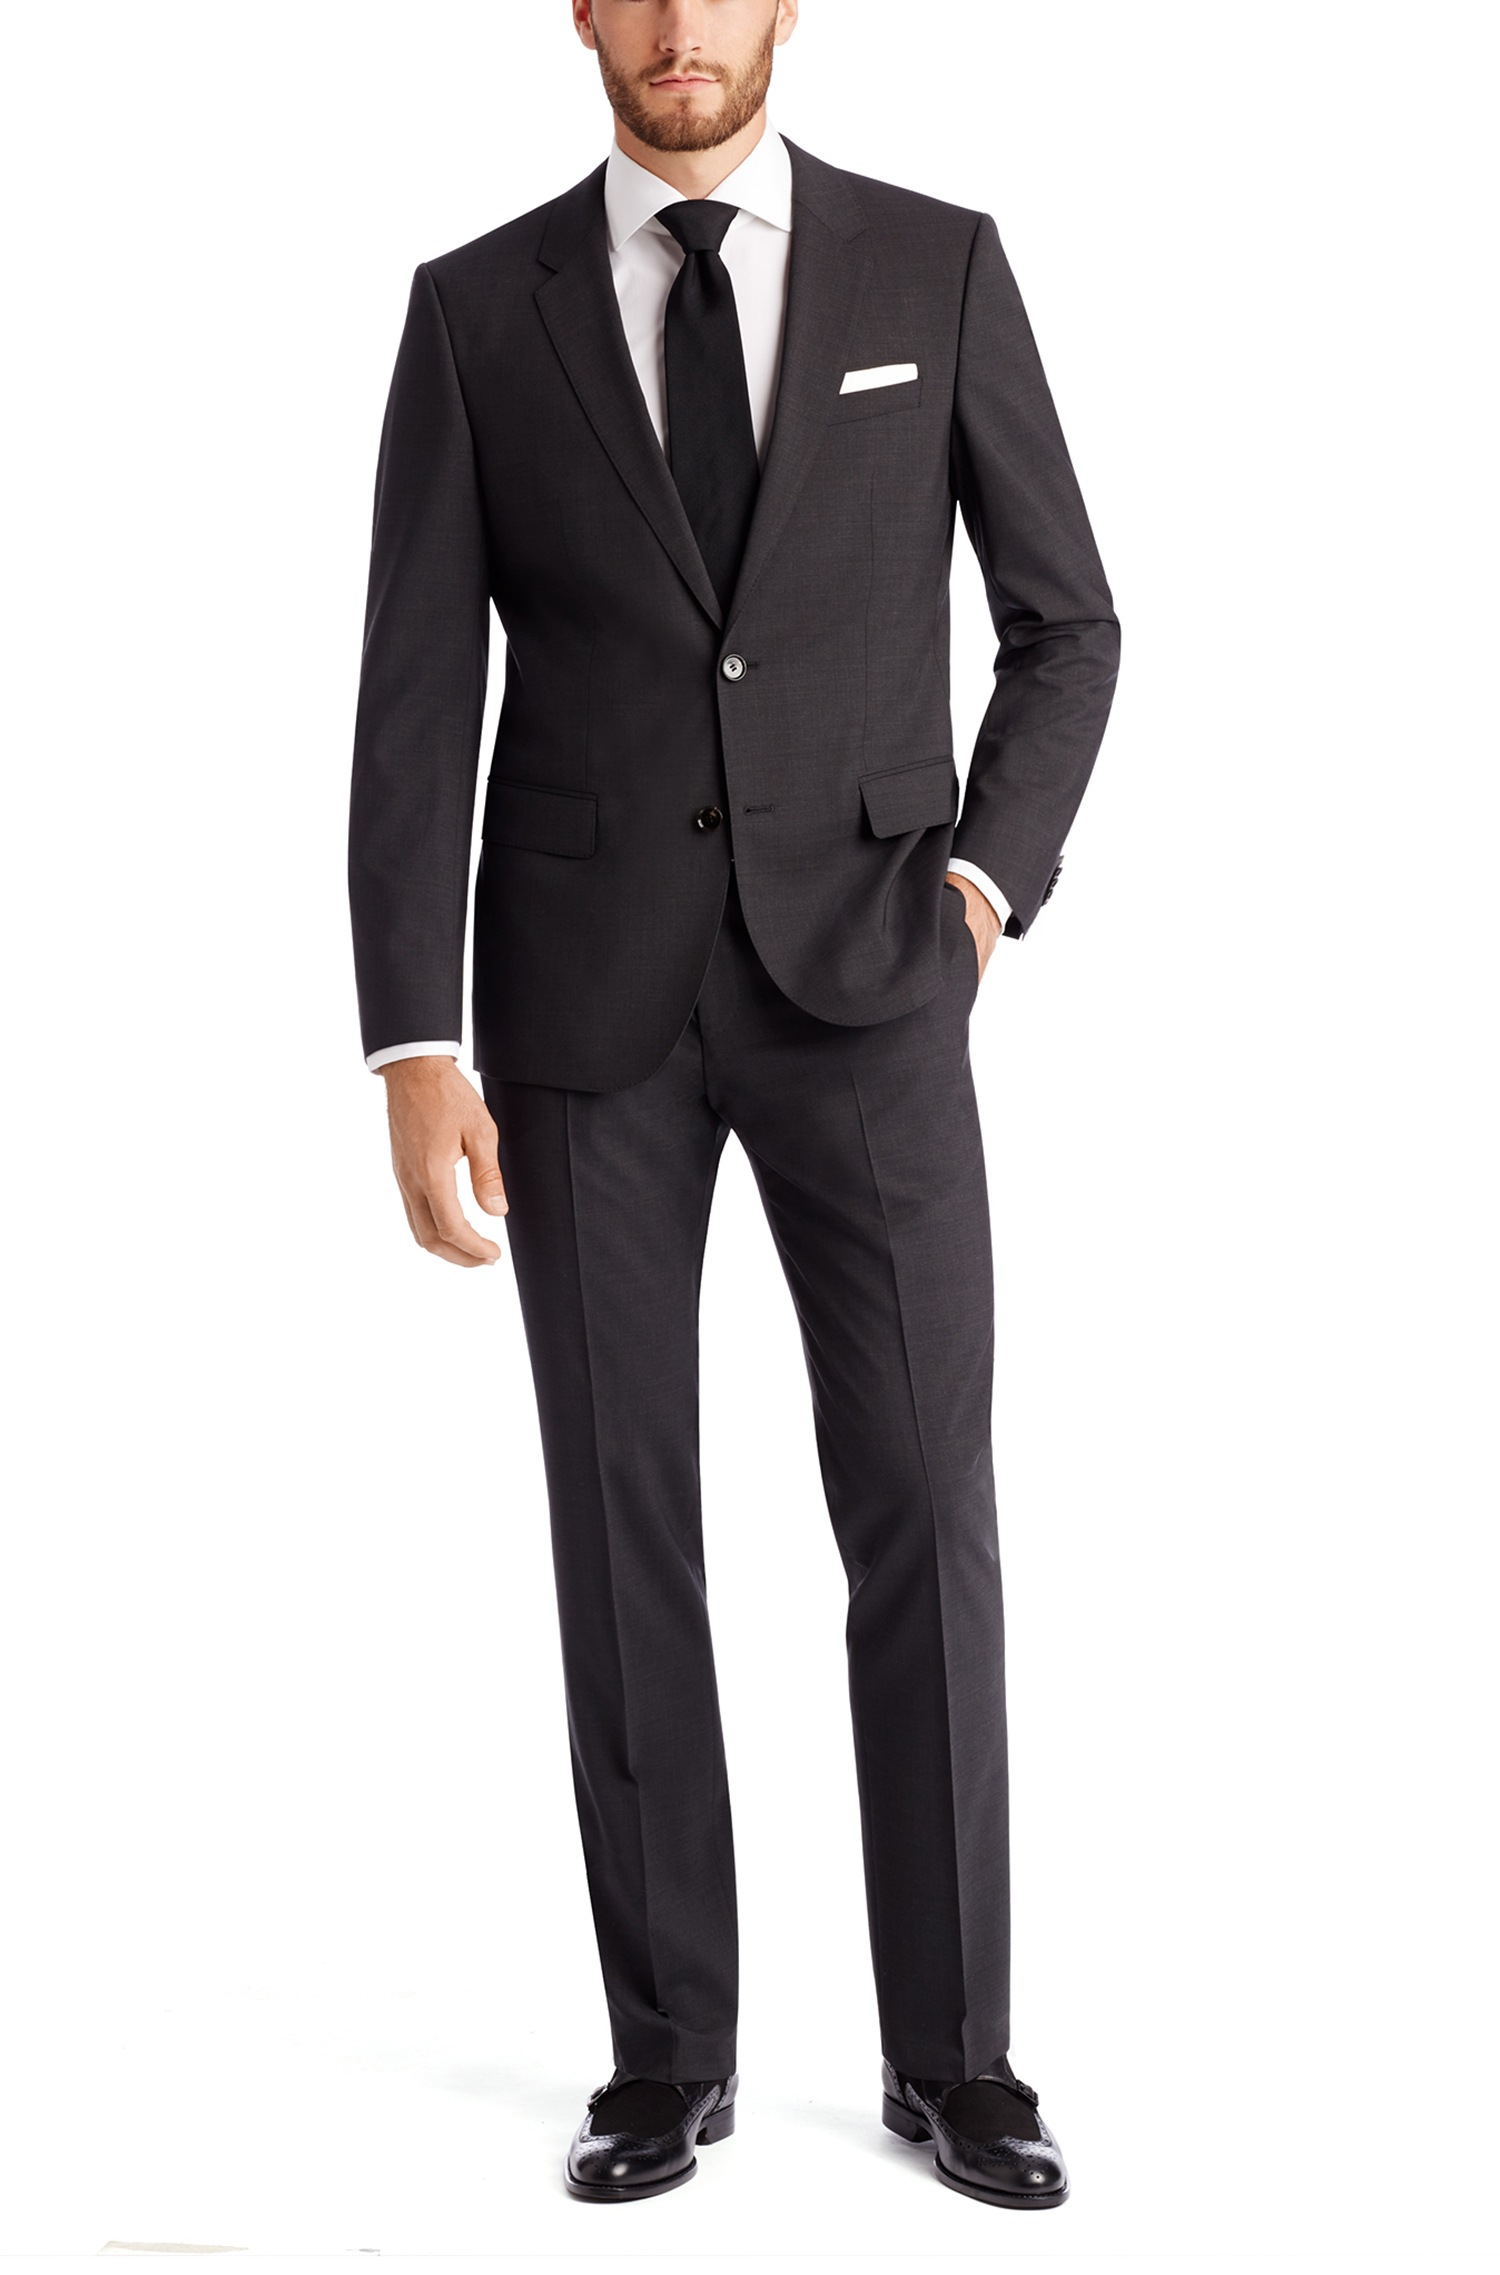 Hugo Boss 'Huge/Genius' | Slim Fit, Stretch Virgin Wool Suit by BOSS | Hugo Boss Suits